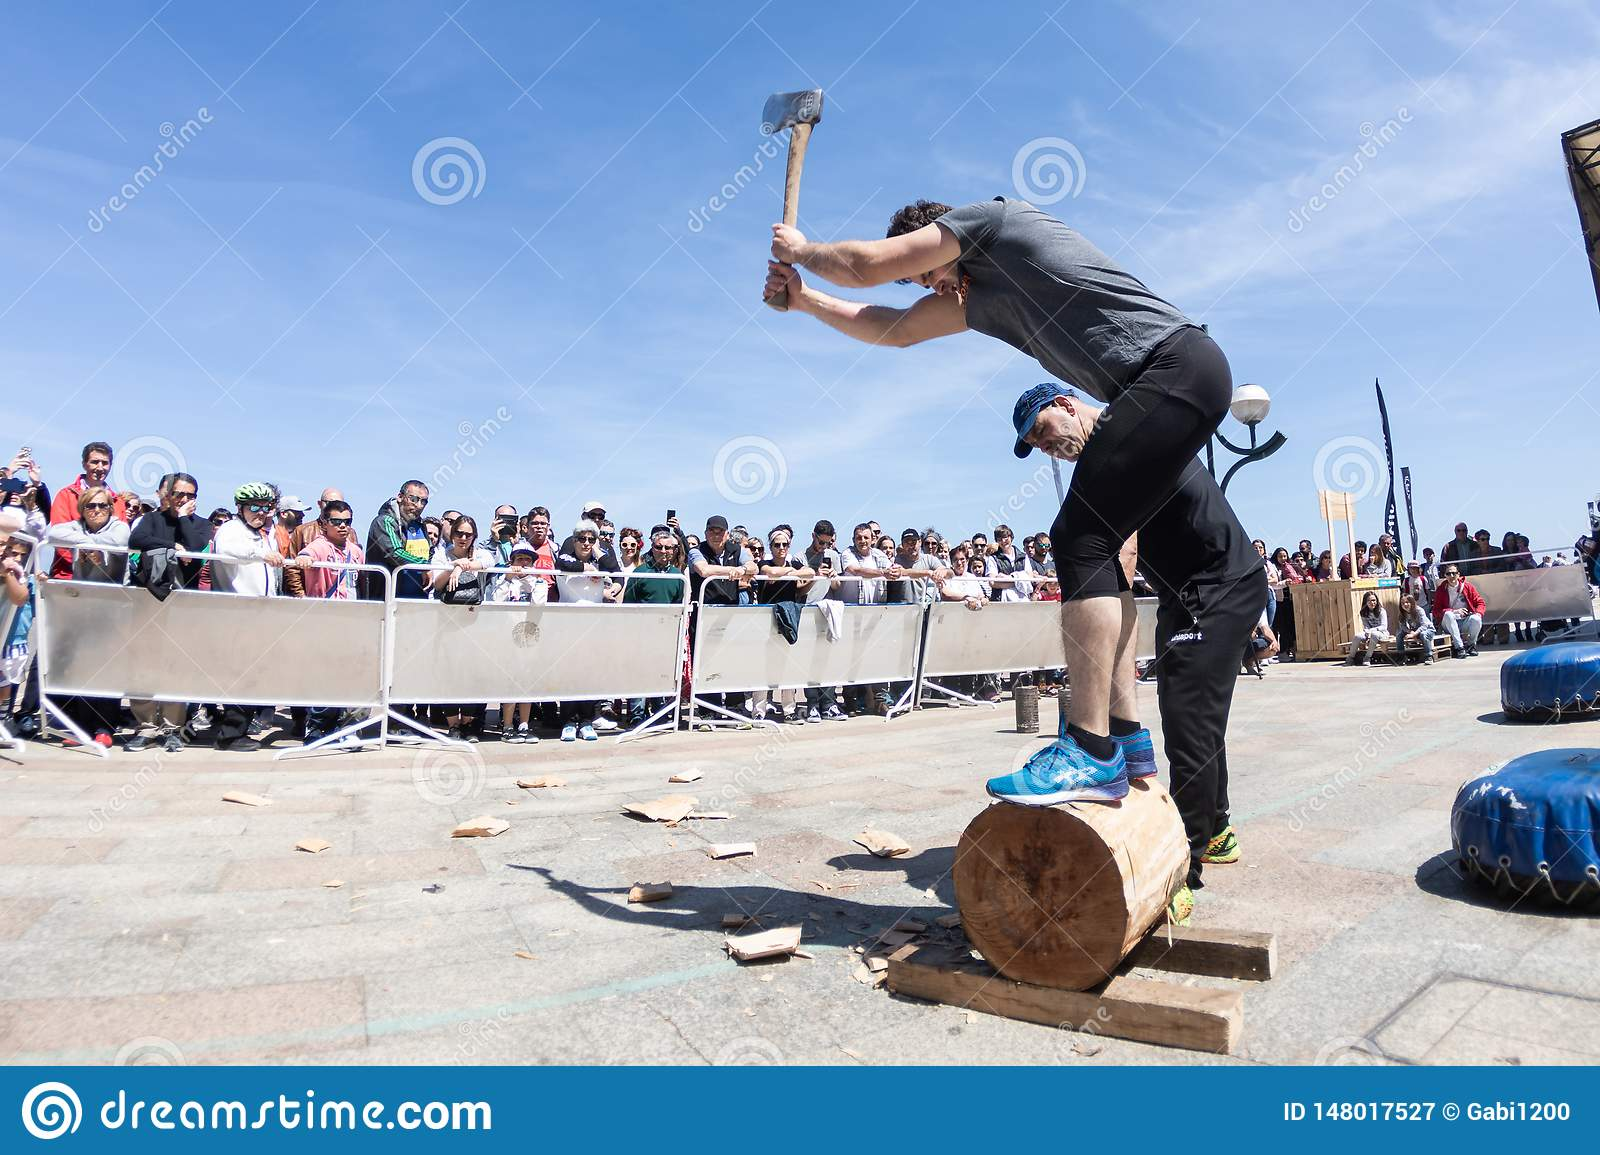 Zarautz, Gipuzcoa / Spain - May 12 2019: Wood chopping demostration in basque country